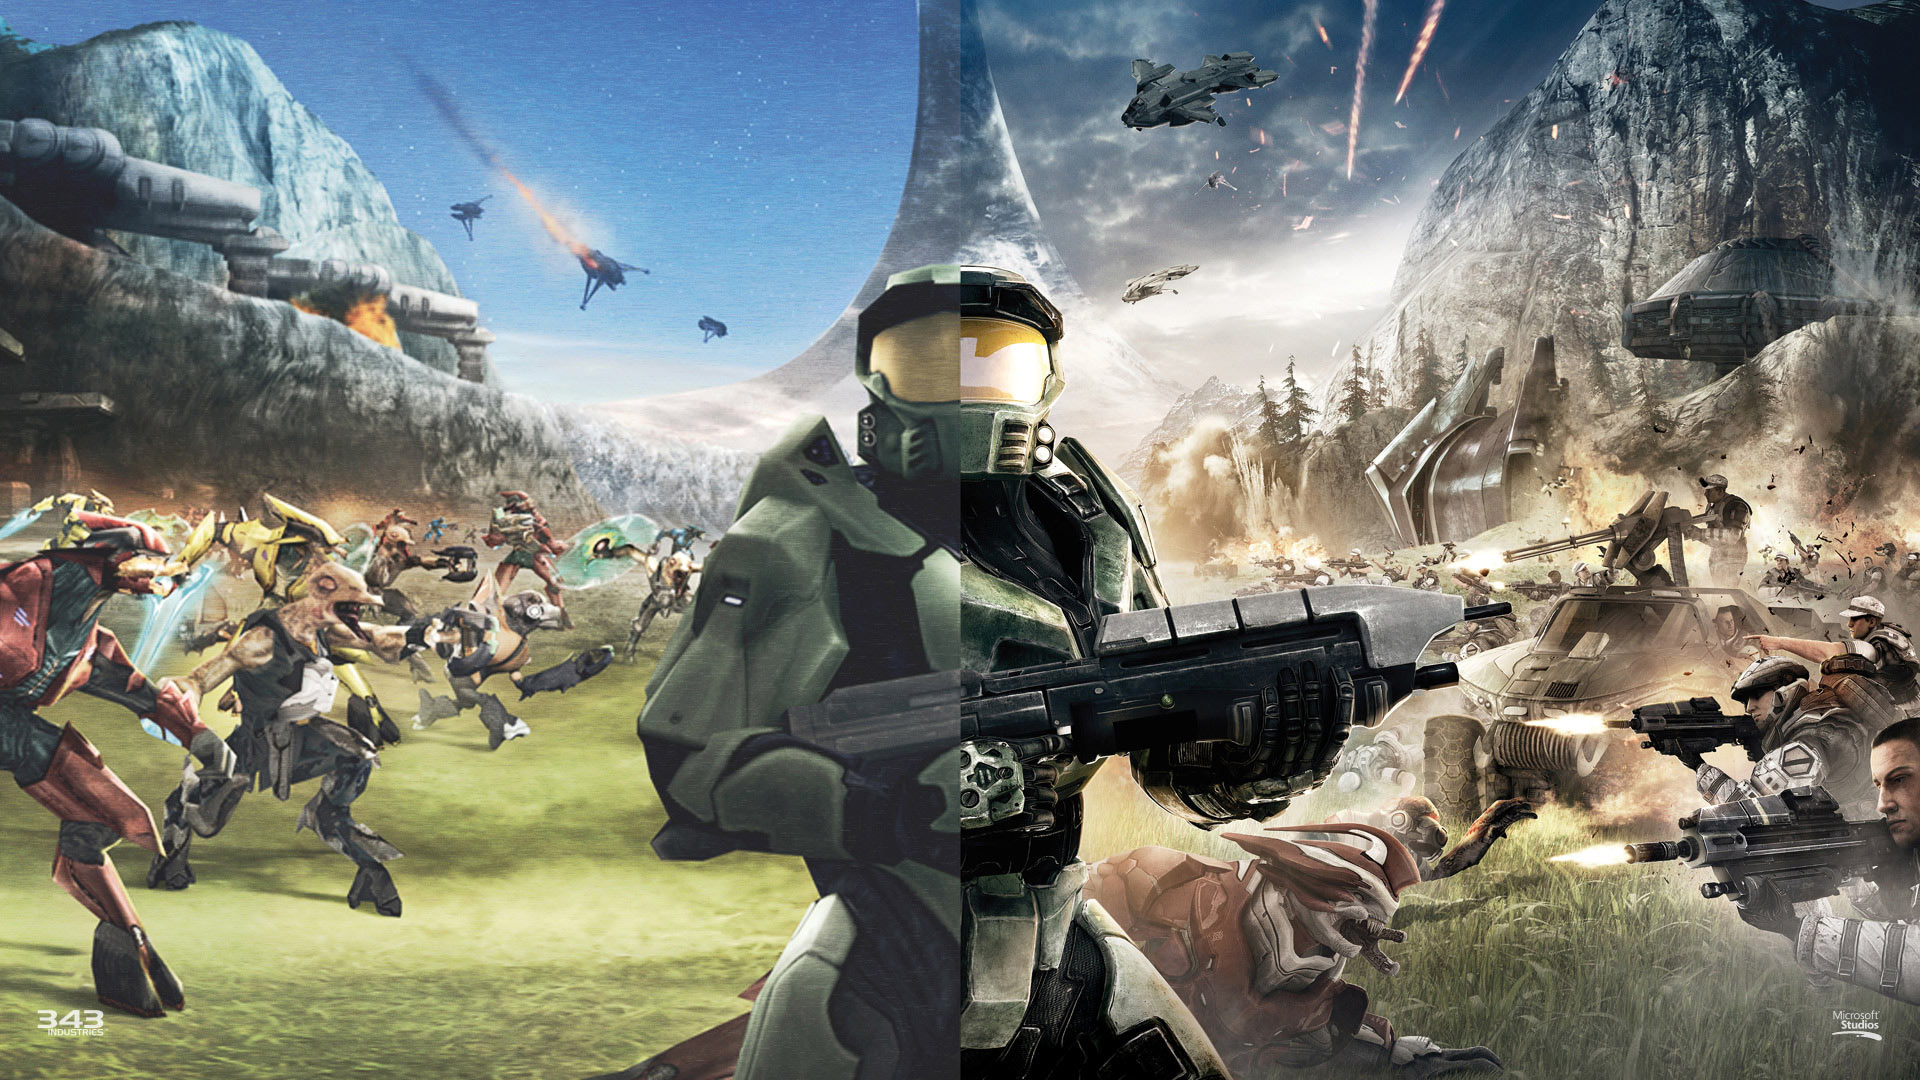 halo graphics